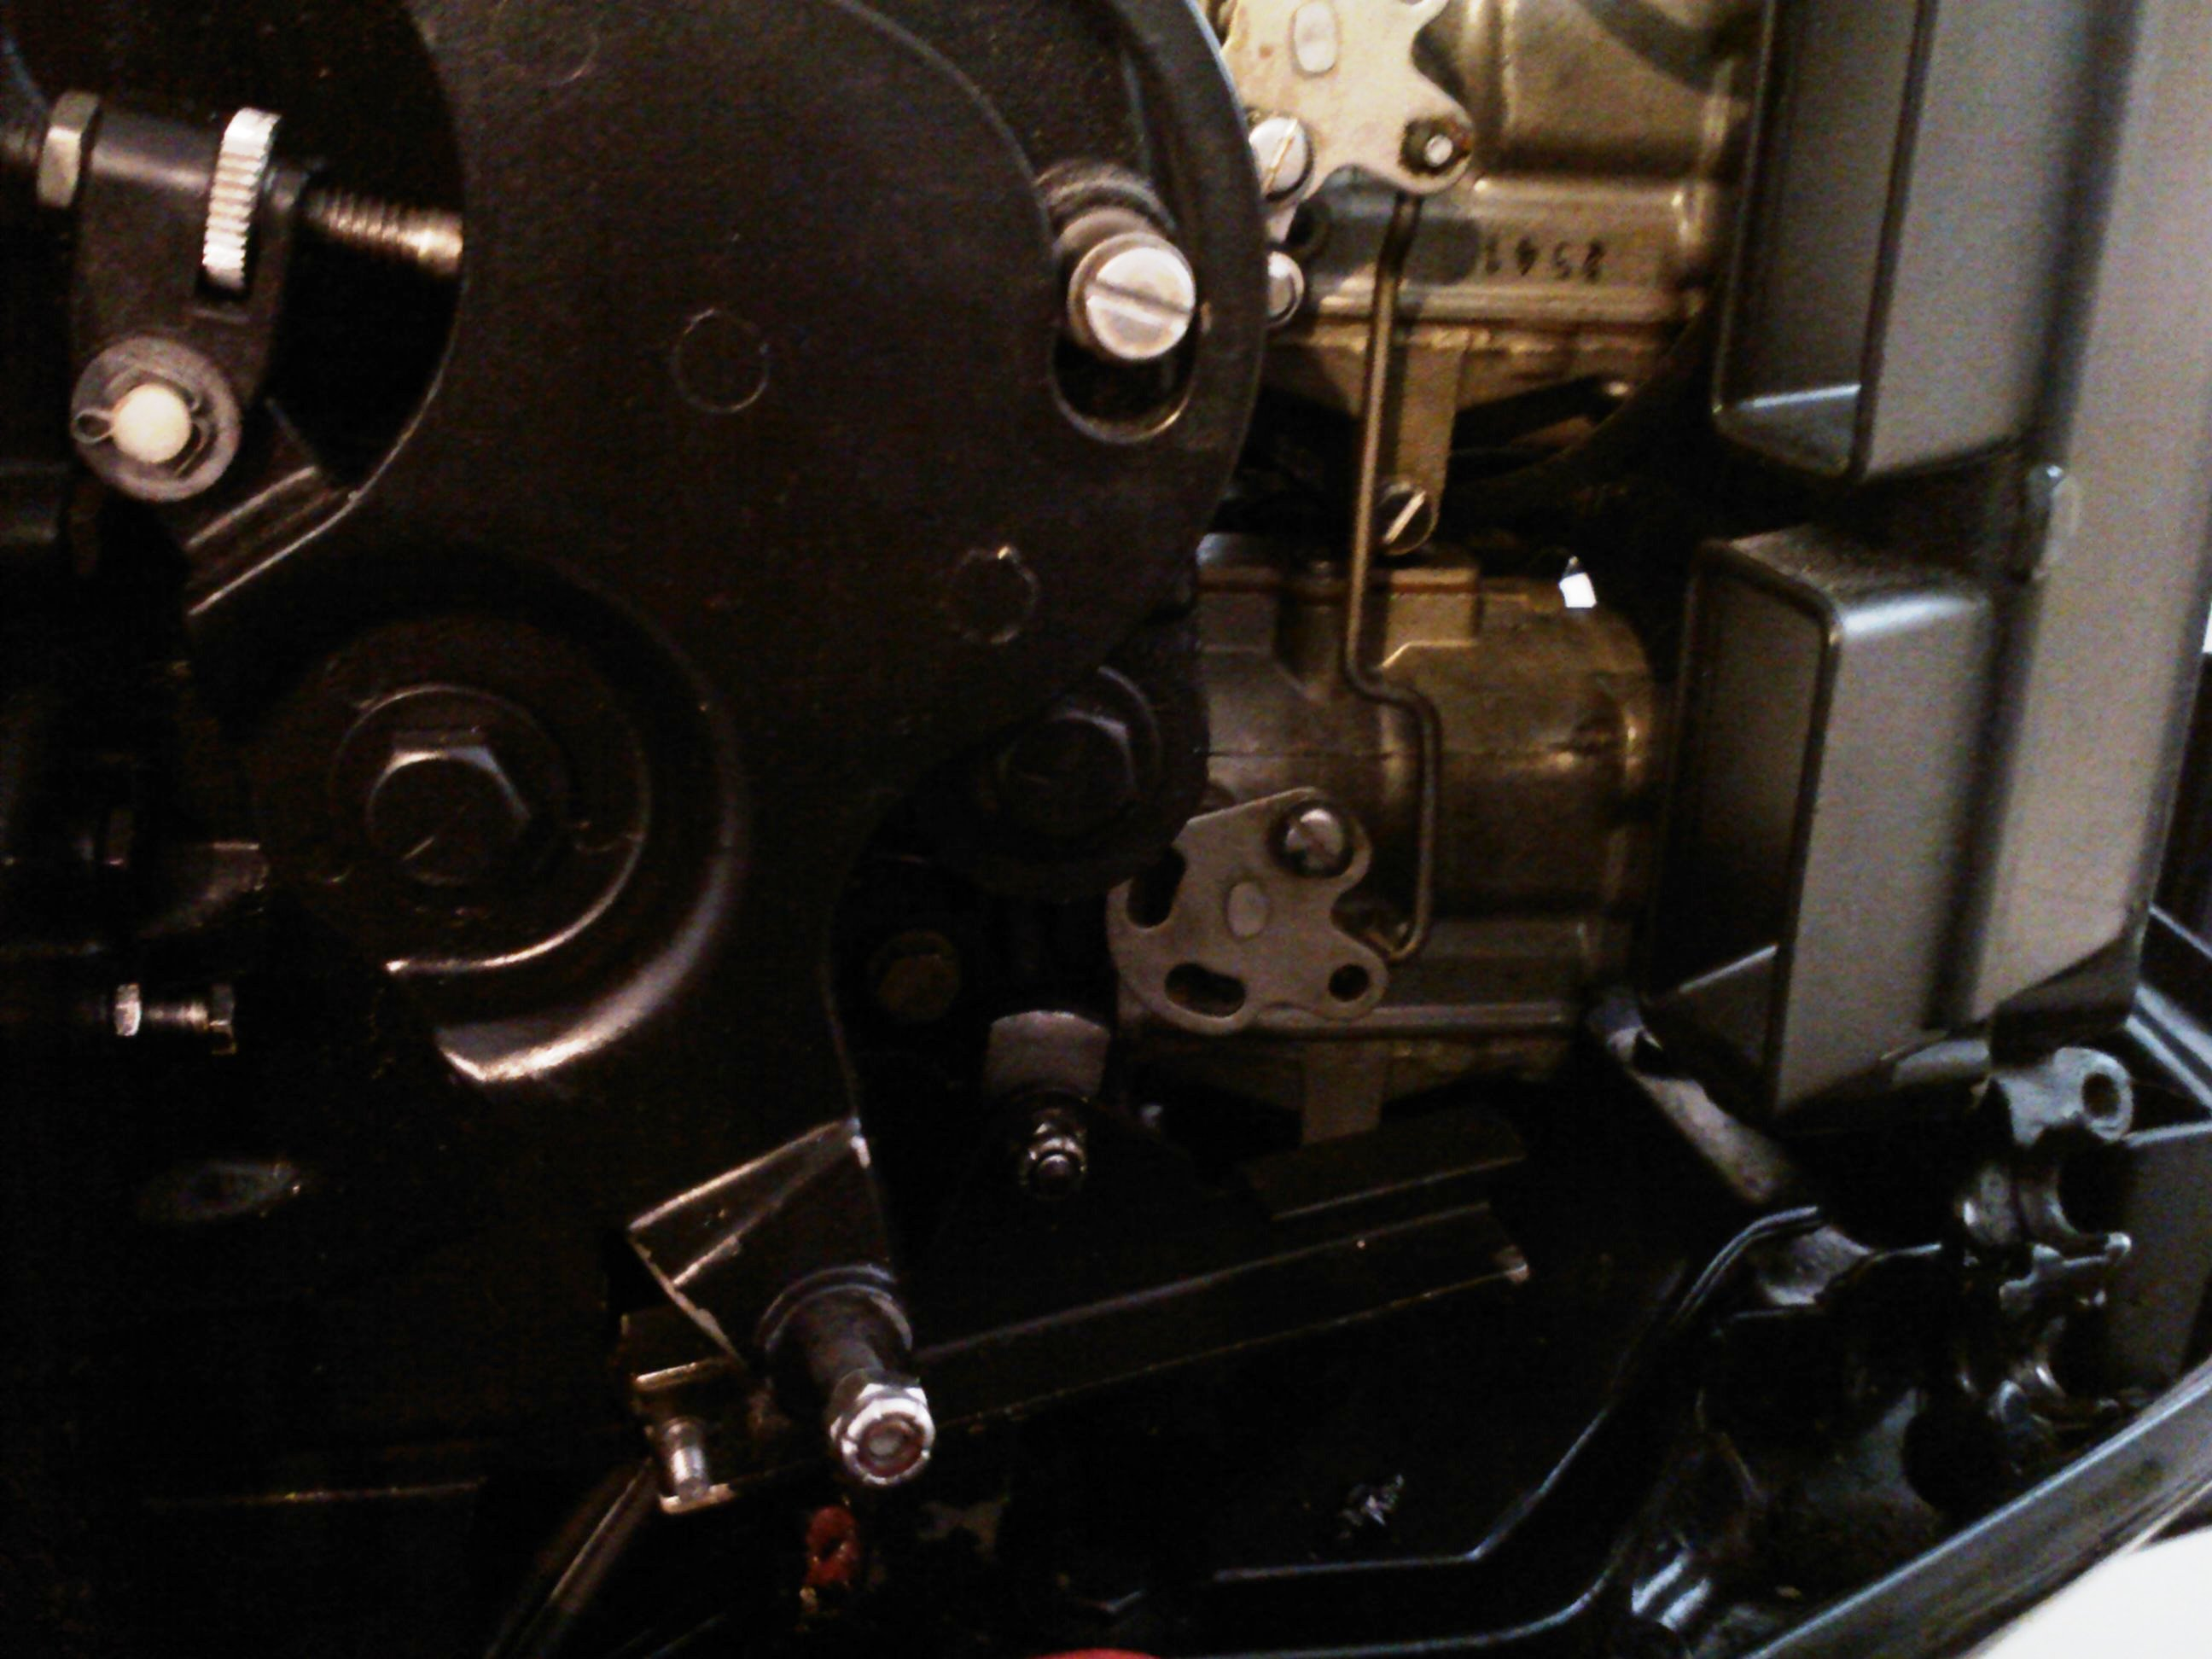 1989 110 hp Evinrude 20 in shaft I just replace the shift